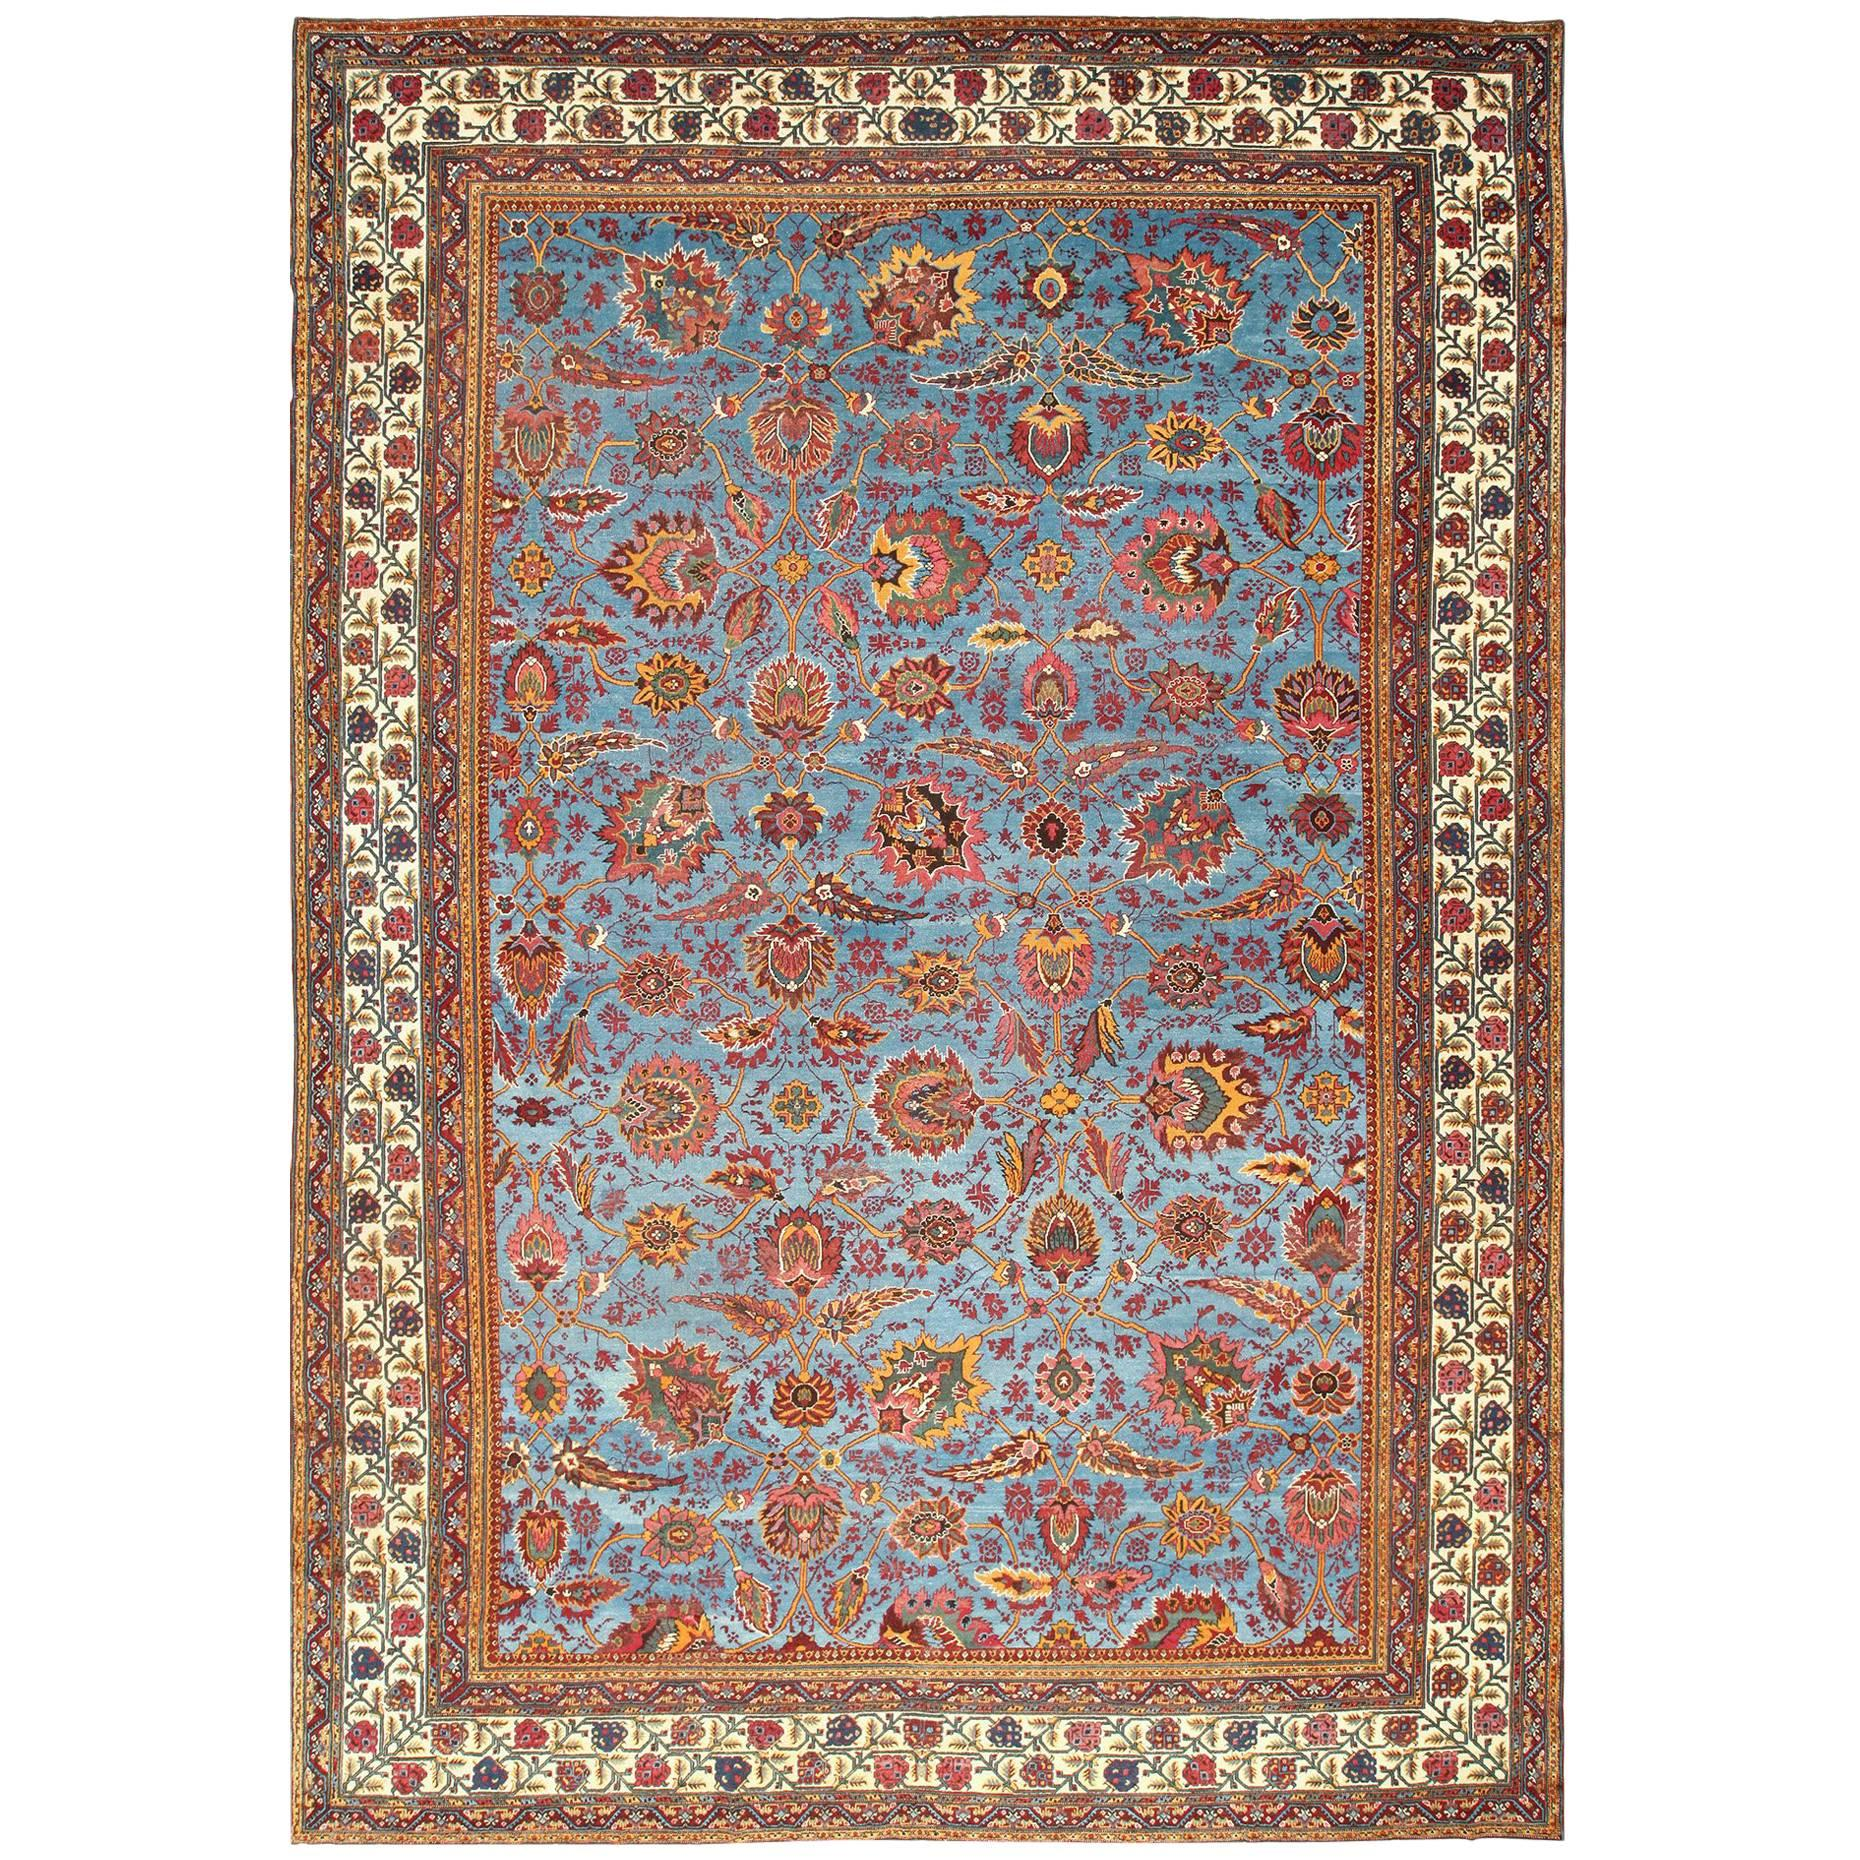 Antique and Modern Indian Rugs and Carpets 1928 For Sale at 1stdibs